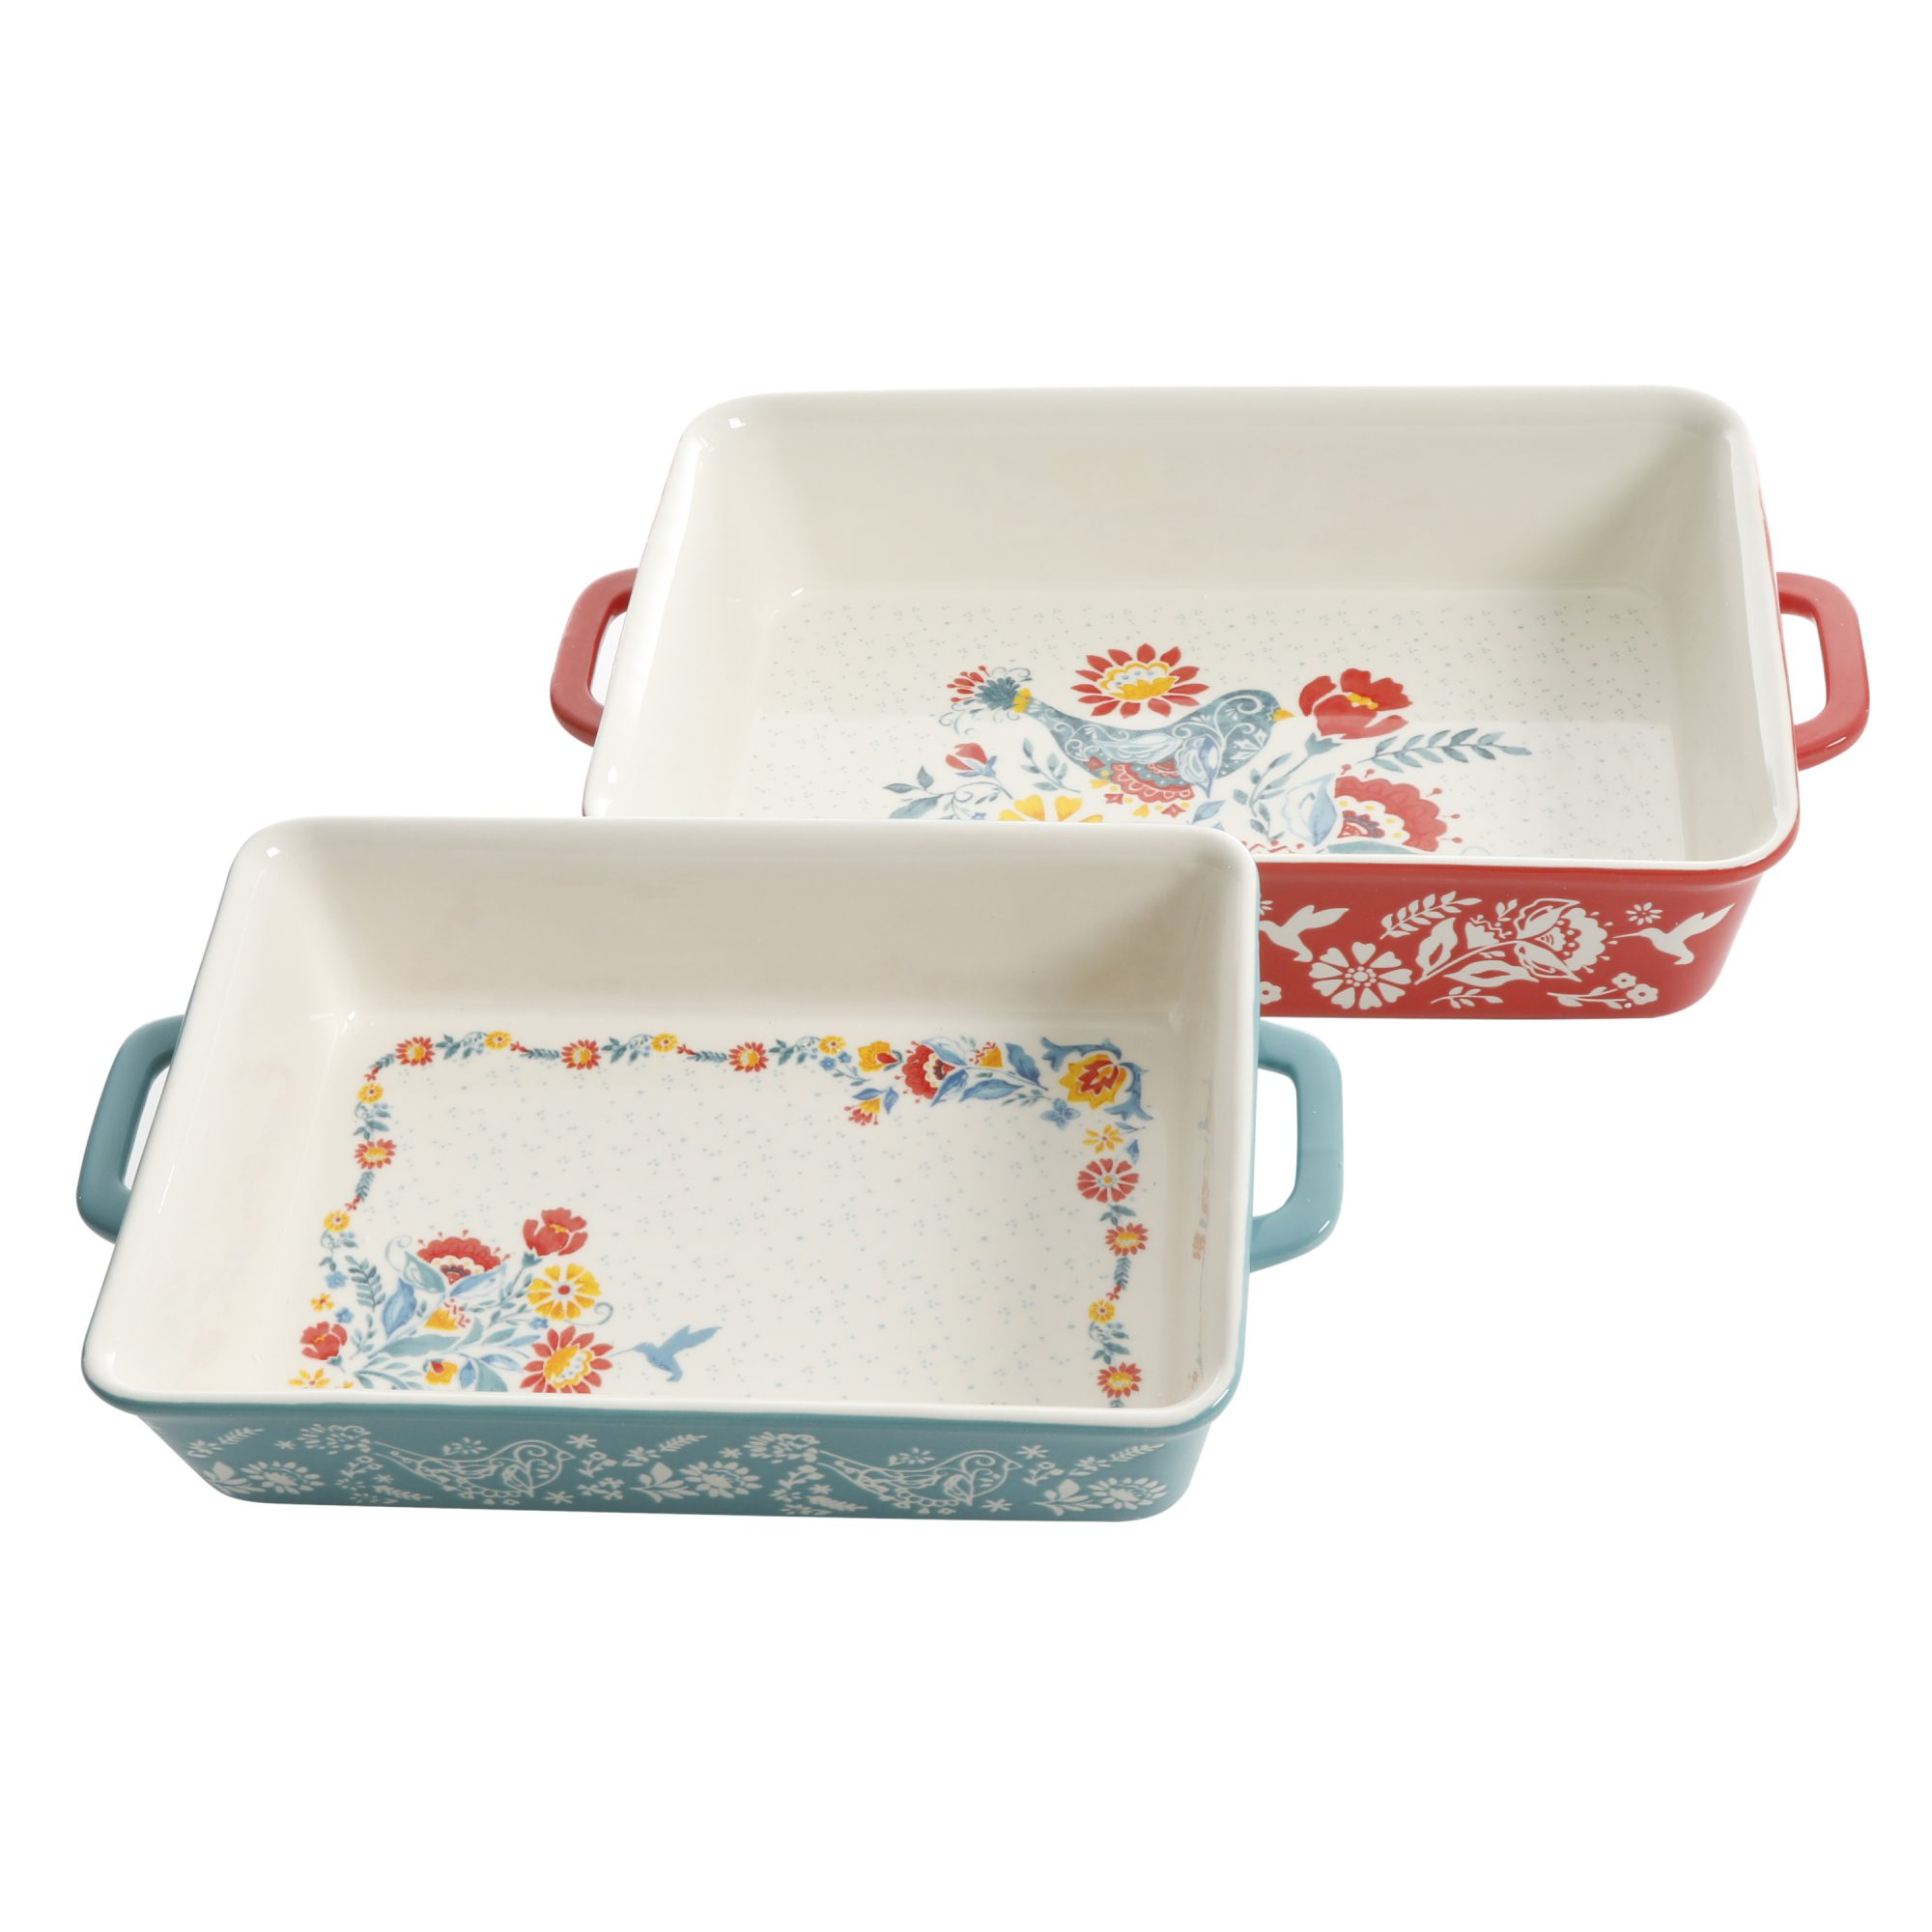 two baking dishes